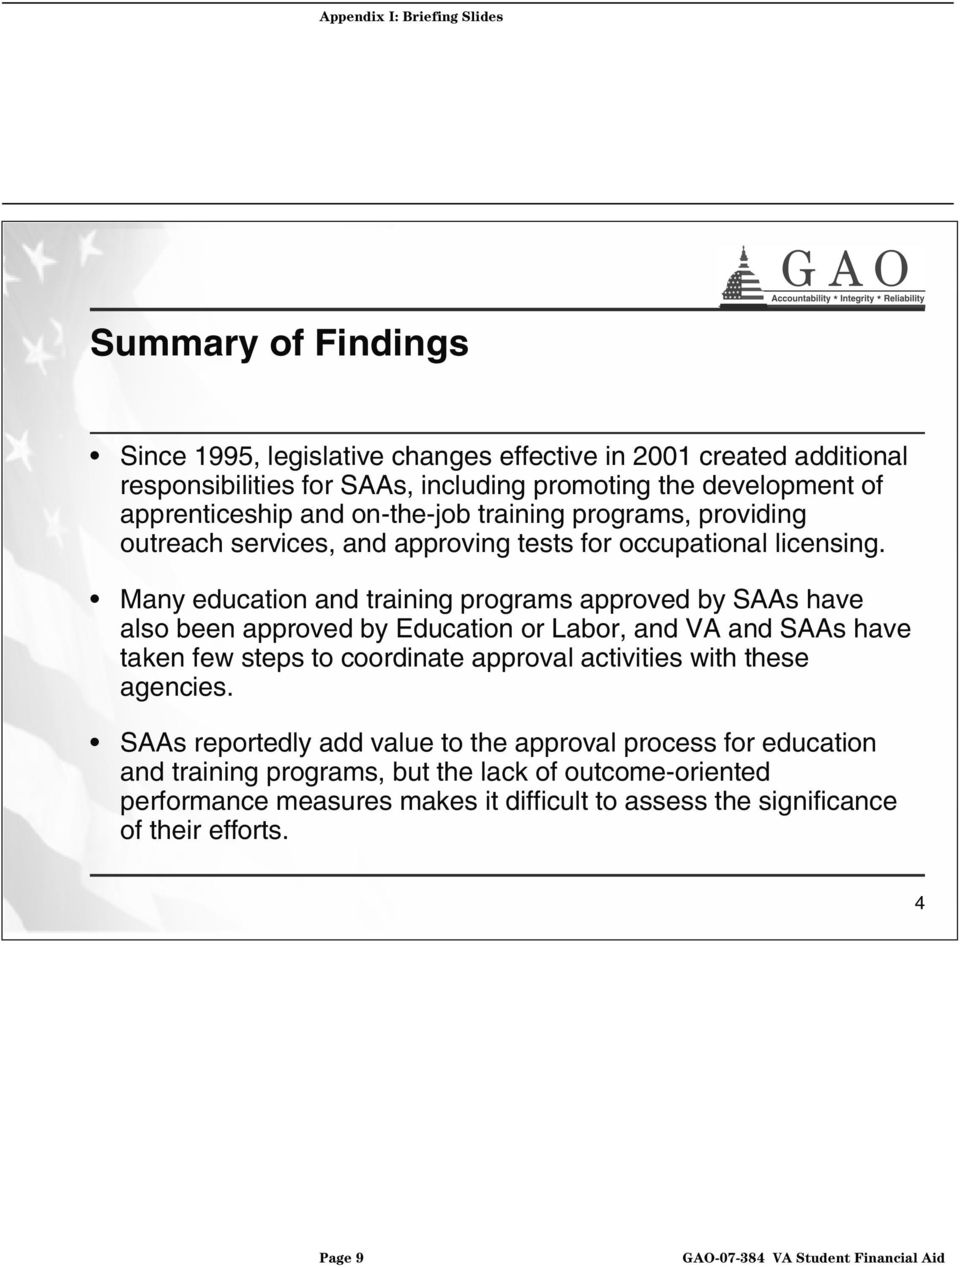 Many education and training programs approved by SAAs have also been approved by Education or Labor, and VA and SAAs have taken few steps to coordinate approval activities